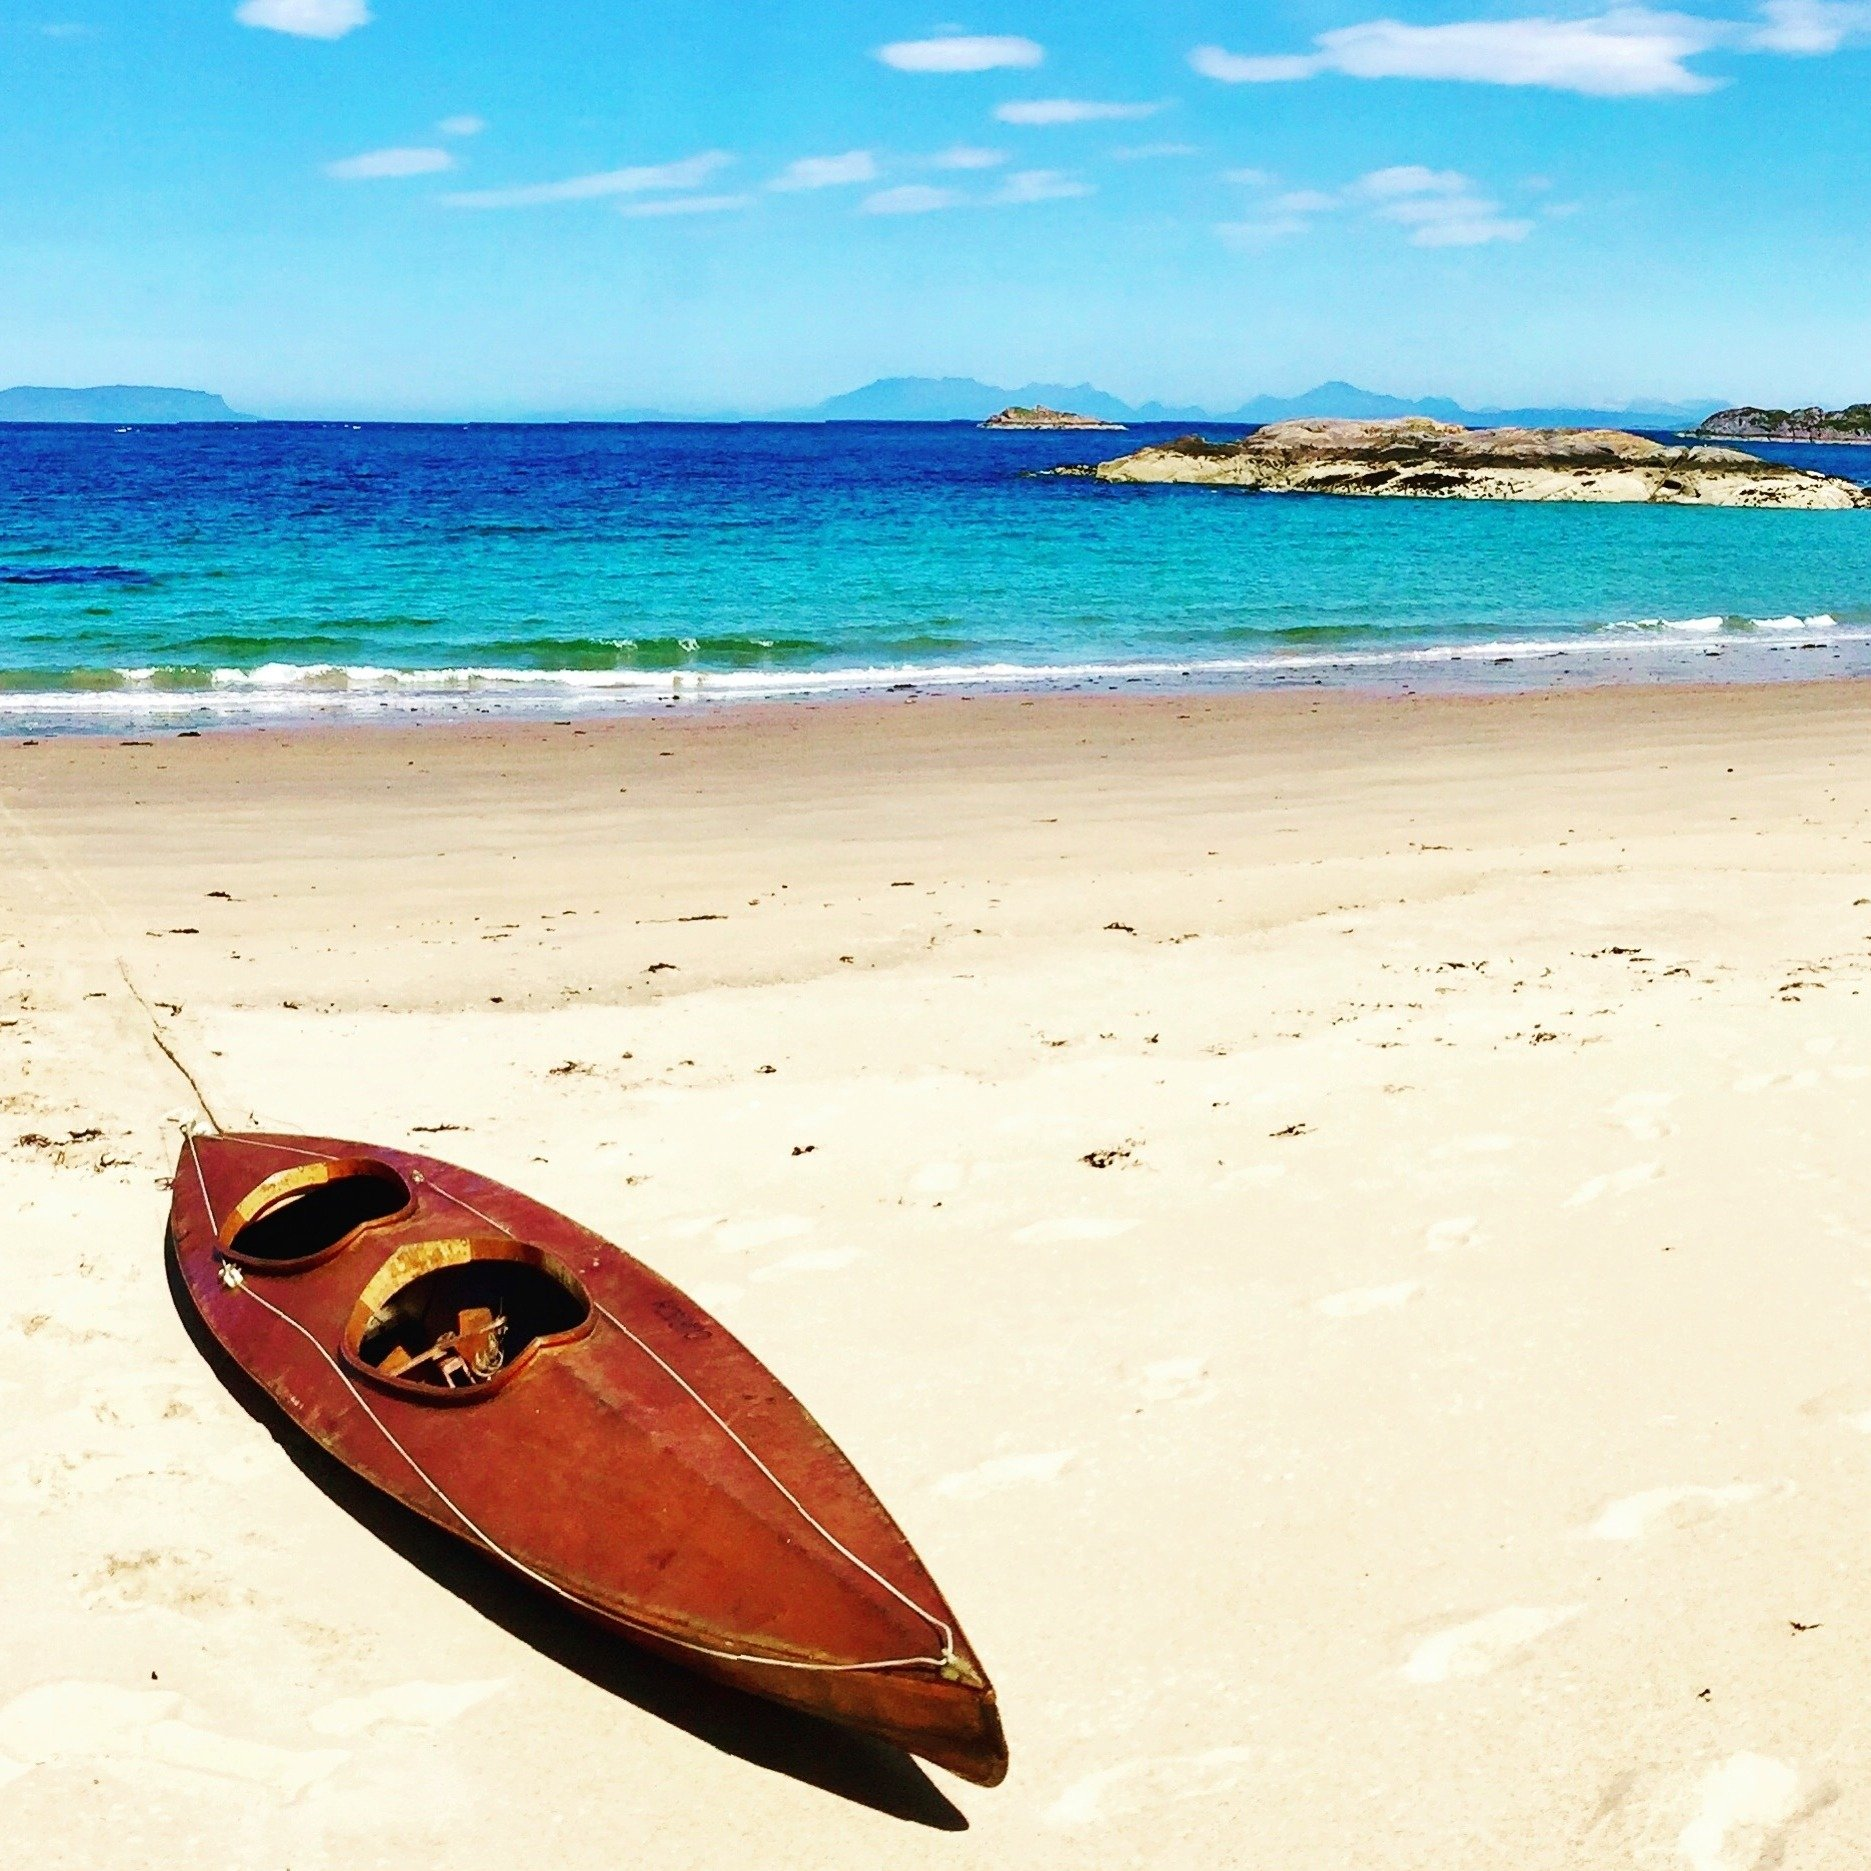 Wooden canoe on white sandy beach with turquoise sea Scotland